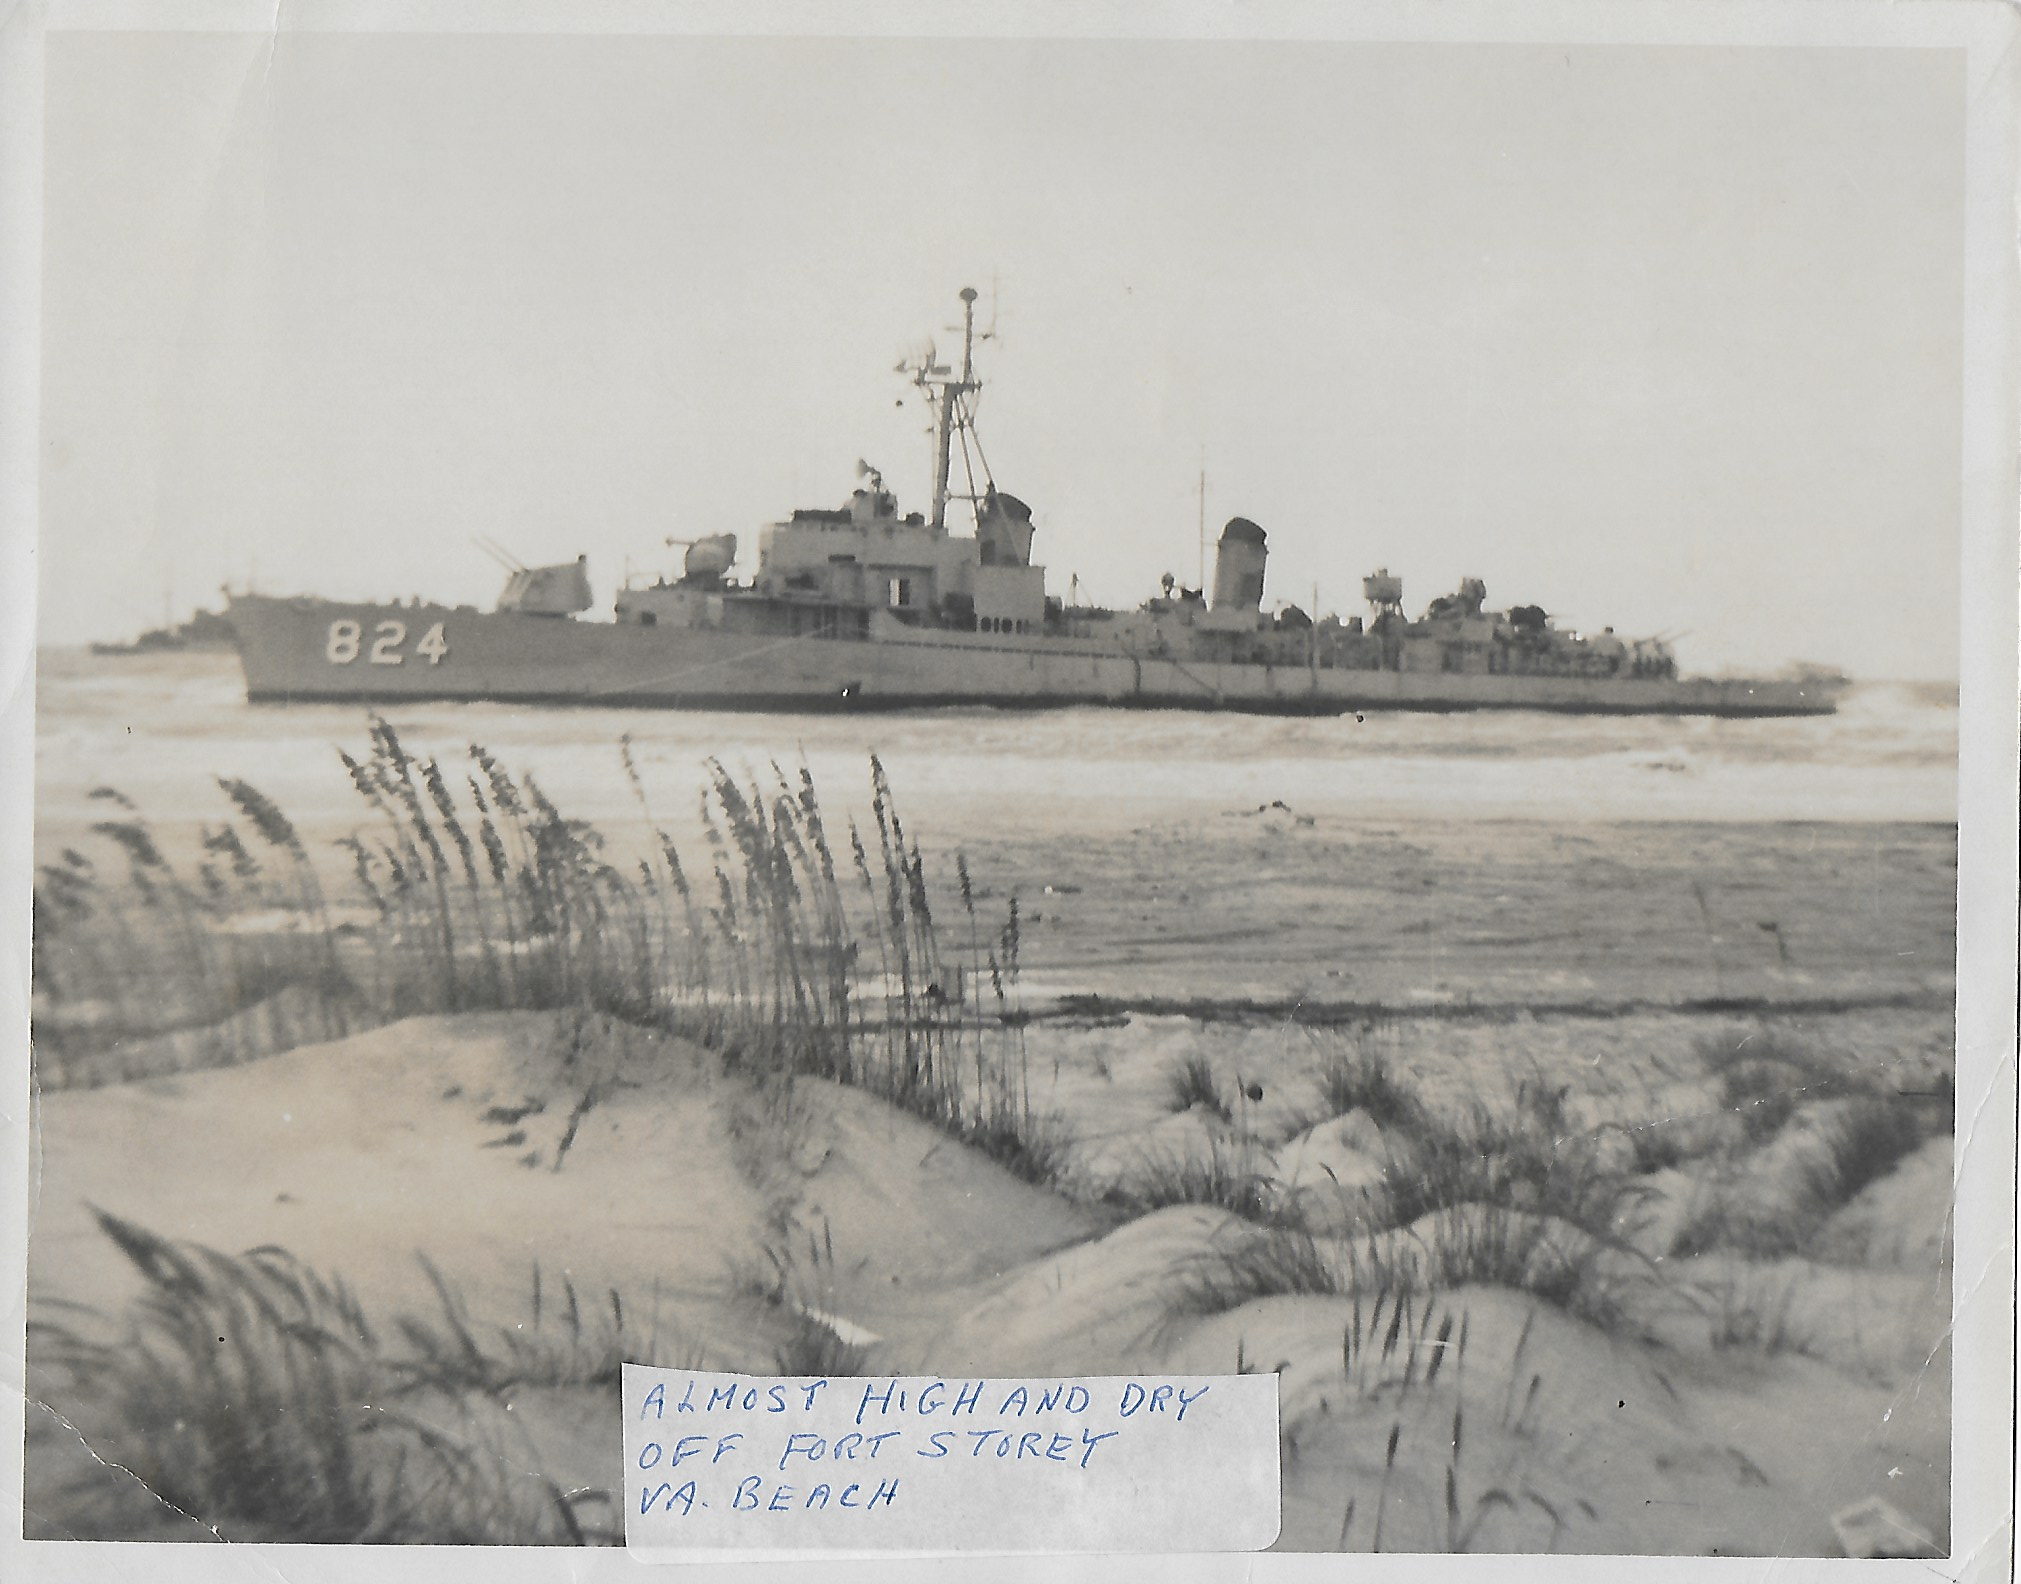 USS Basilone Grounded at Fort Story, VA